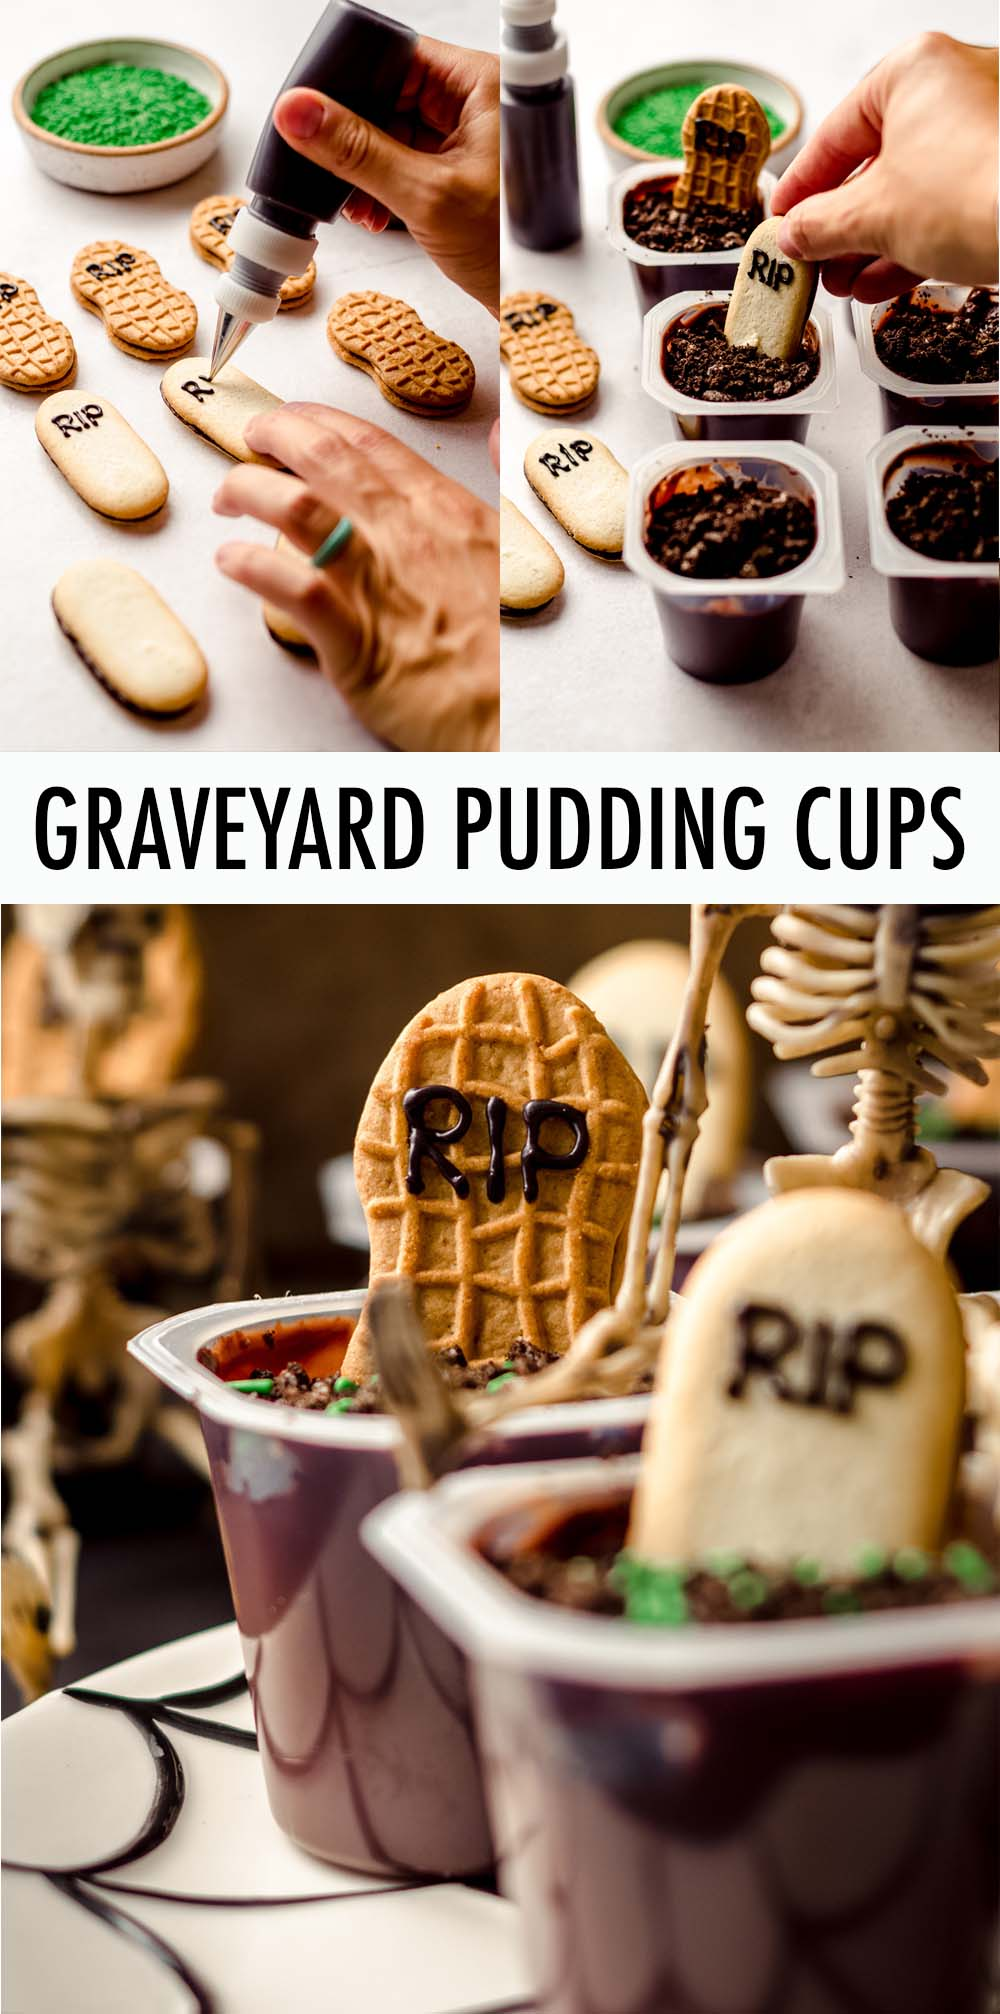 Turn pre-made pudding cups and cookies into cute no-bake Halloween treats fit for any ghost, ghoul, or zombie. Great for kids to make and eat and perfect for your Halloween party spread!